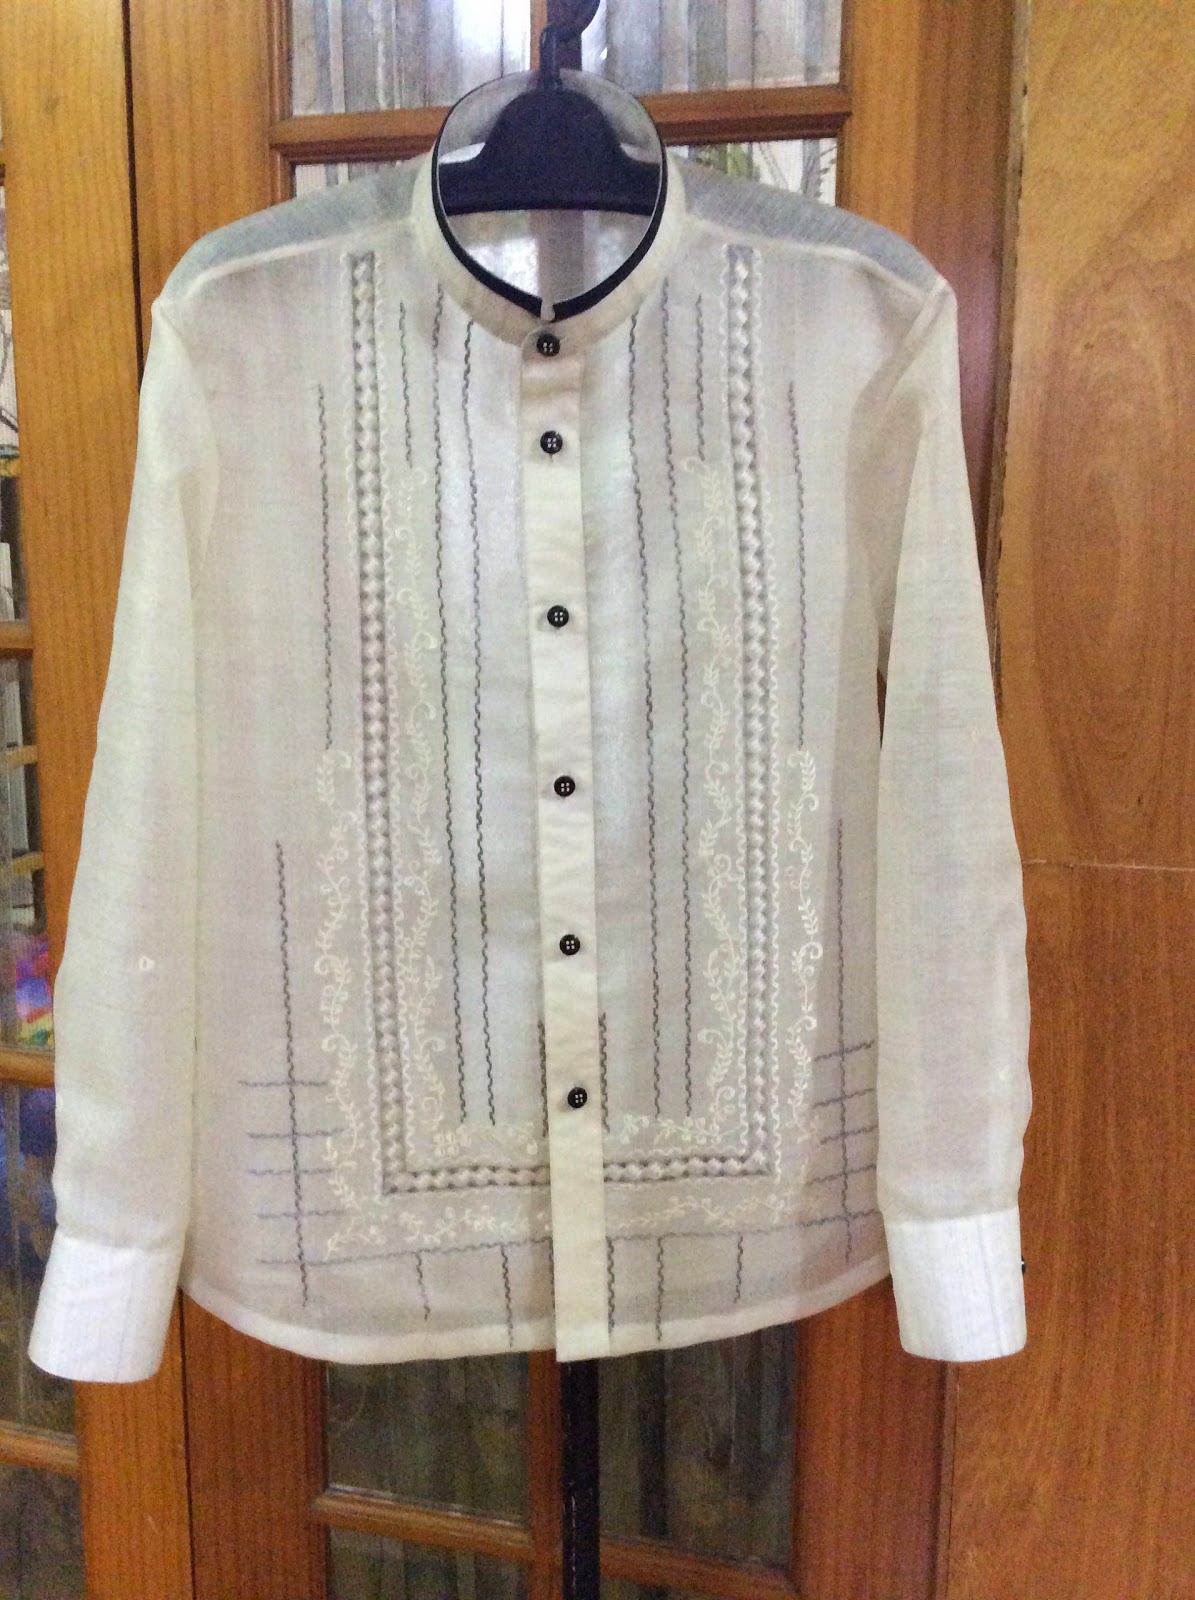 Bride groom house of wedding gown tailoring 8312014 for Barong tagalog wedding dress